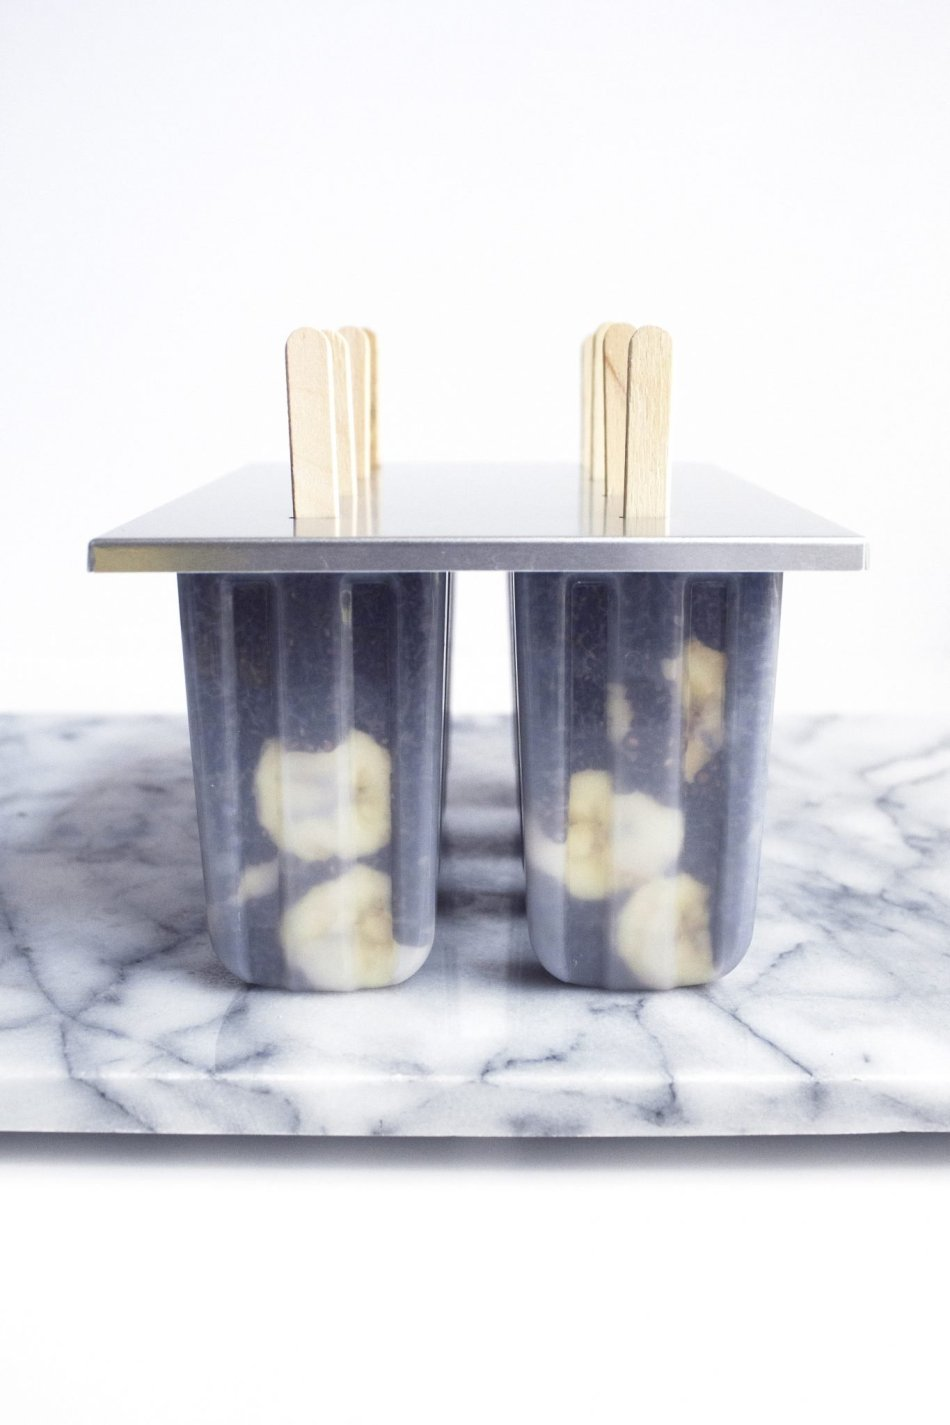 Chocolate Chia Pudding Pops With Bananas | Simple and wholesome